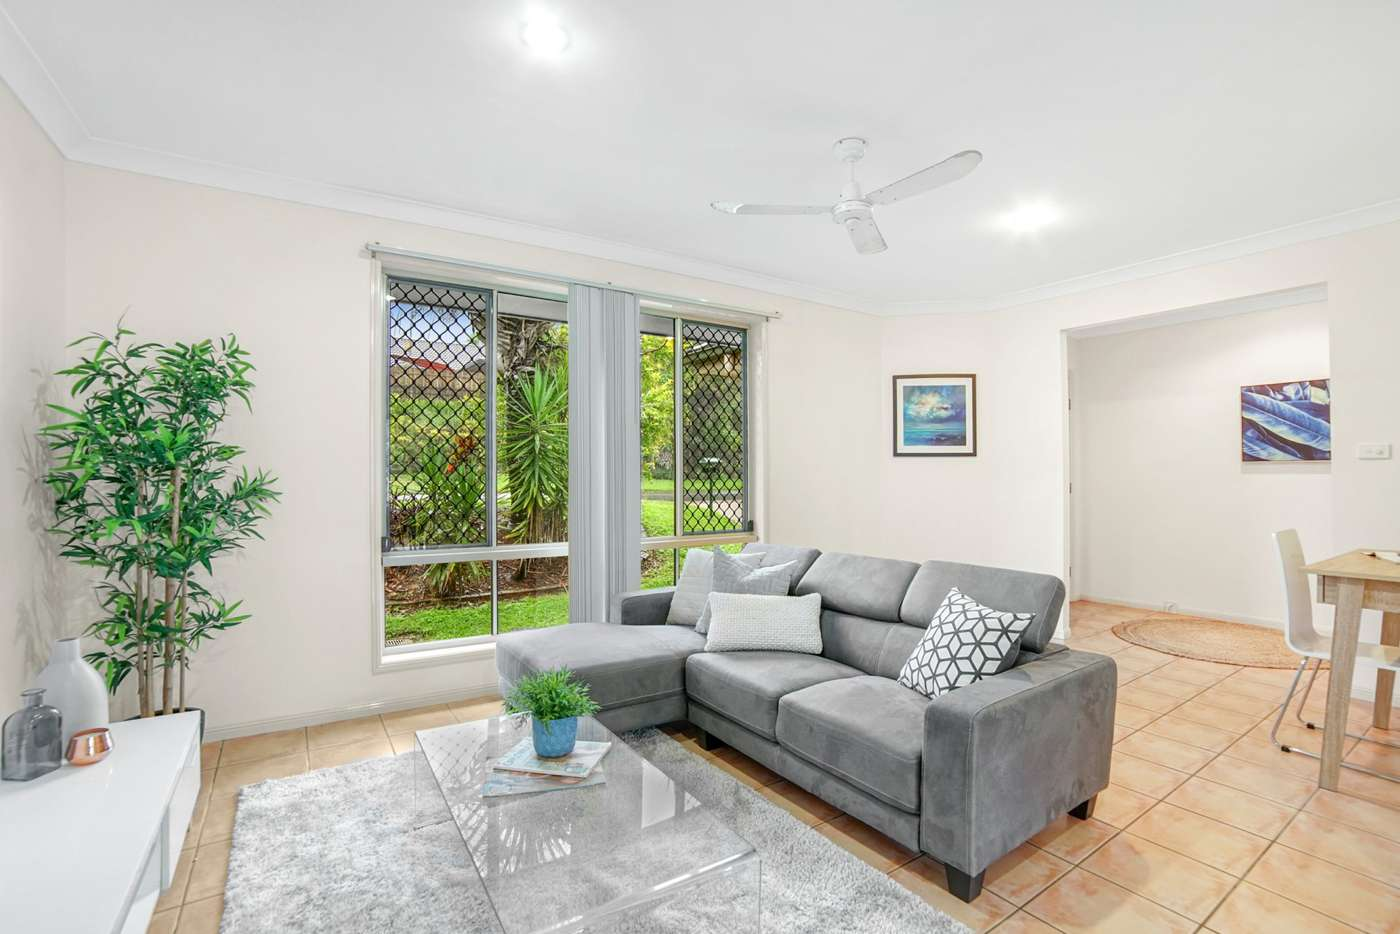 Main view of Homely house listing, 11 Taringa Street, Brinsmead QLD 4870